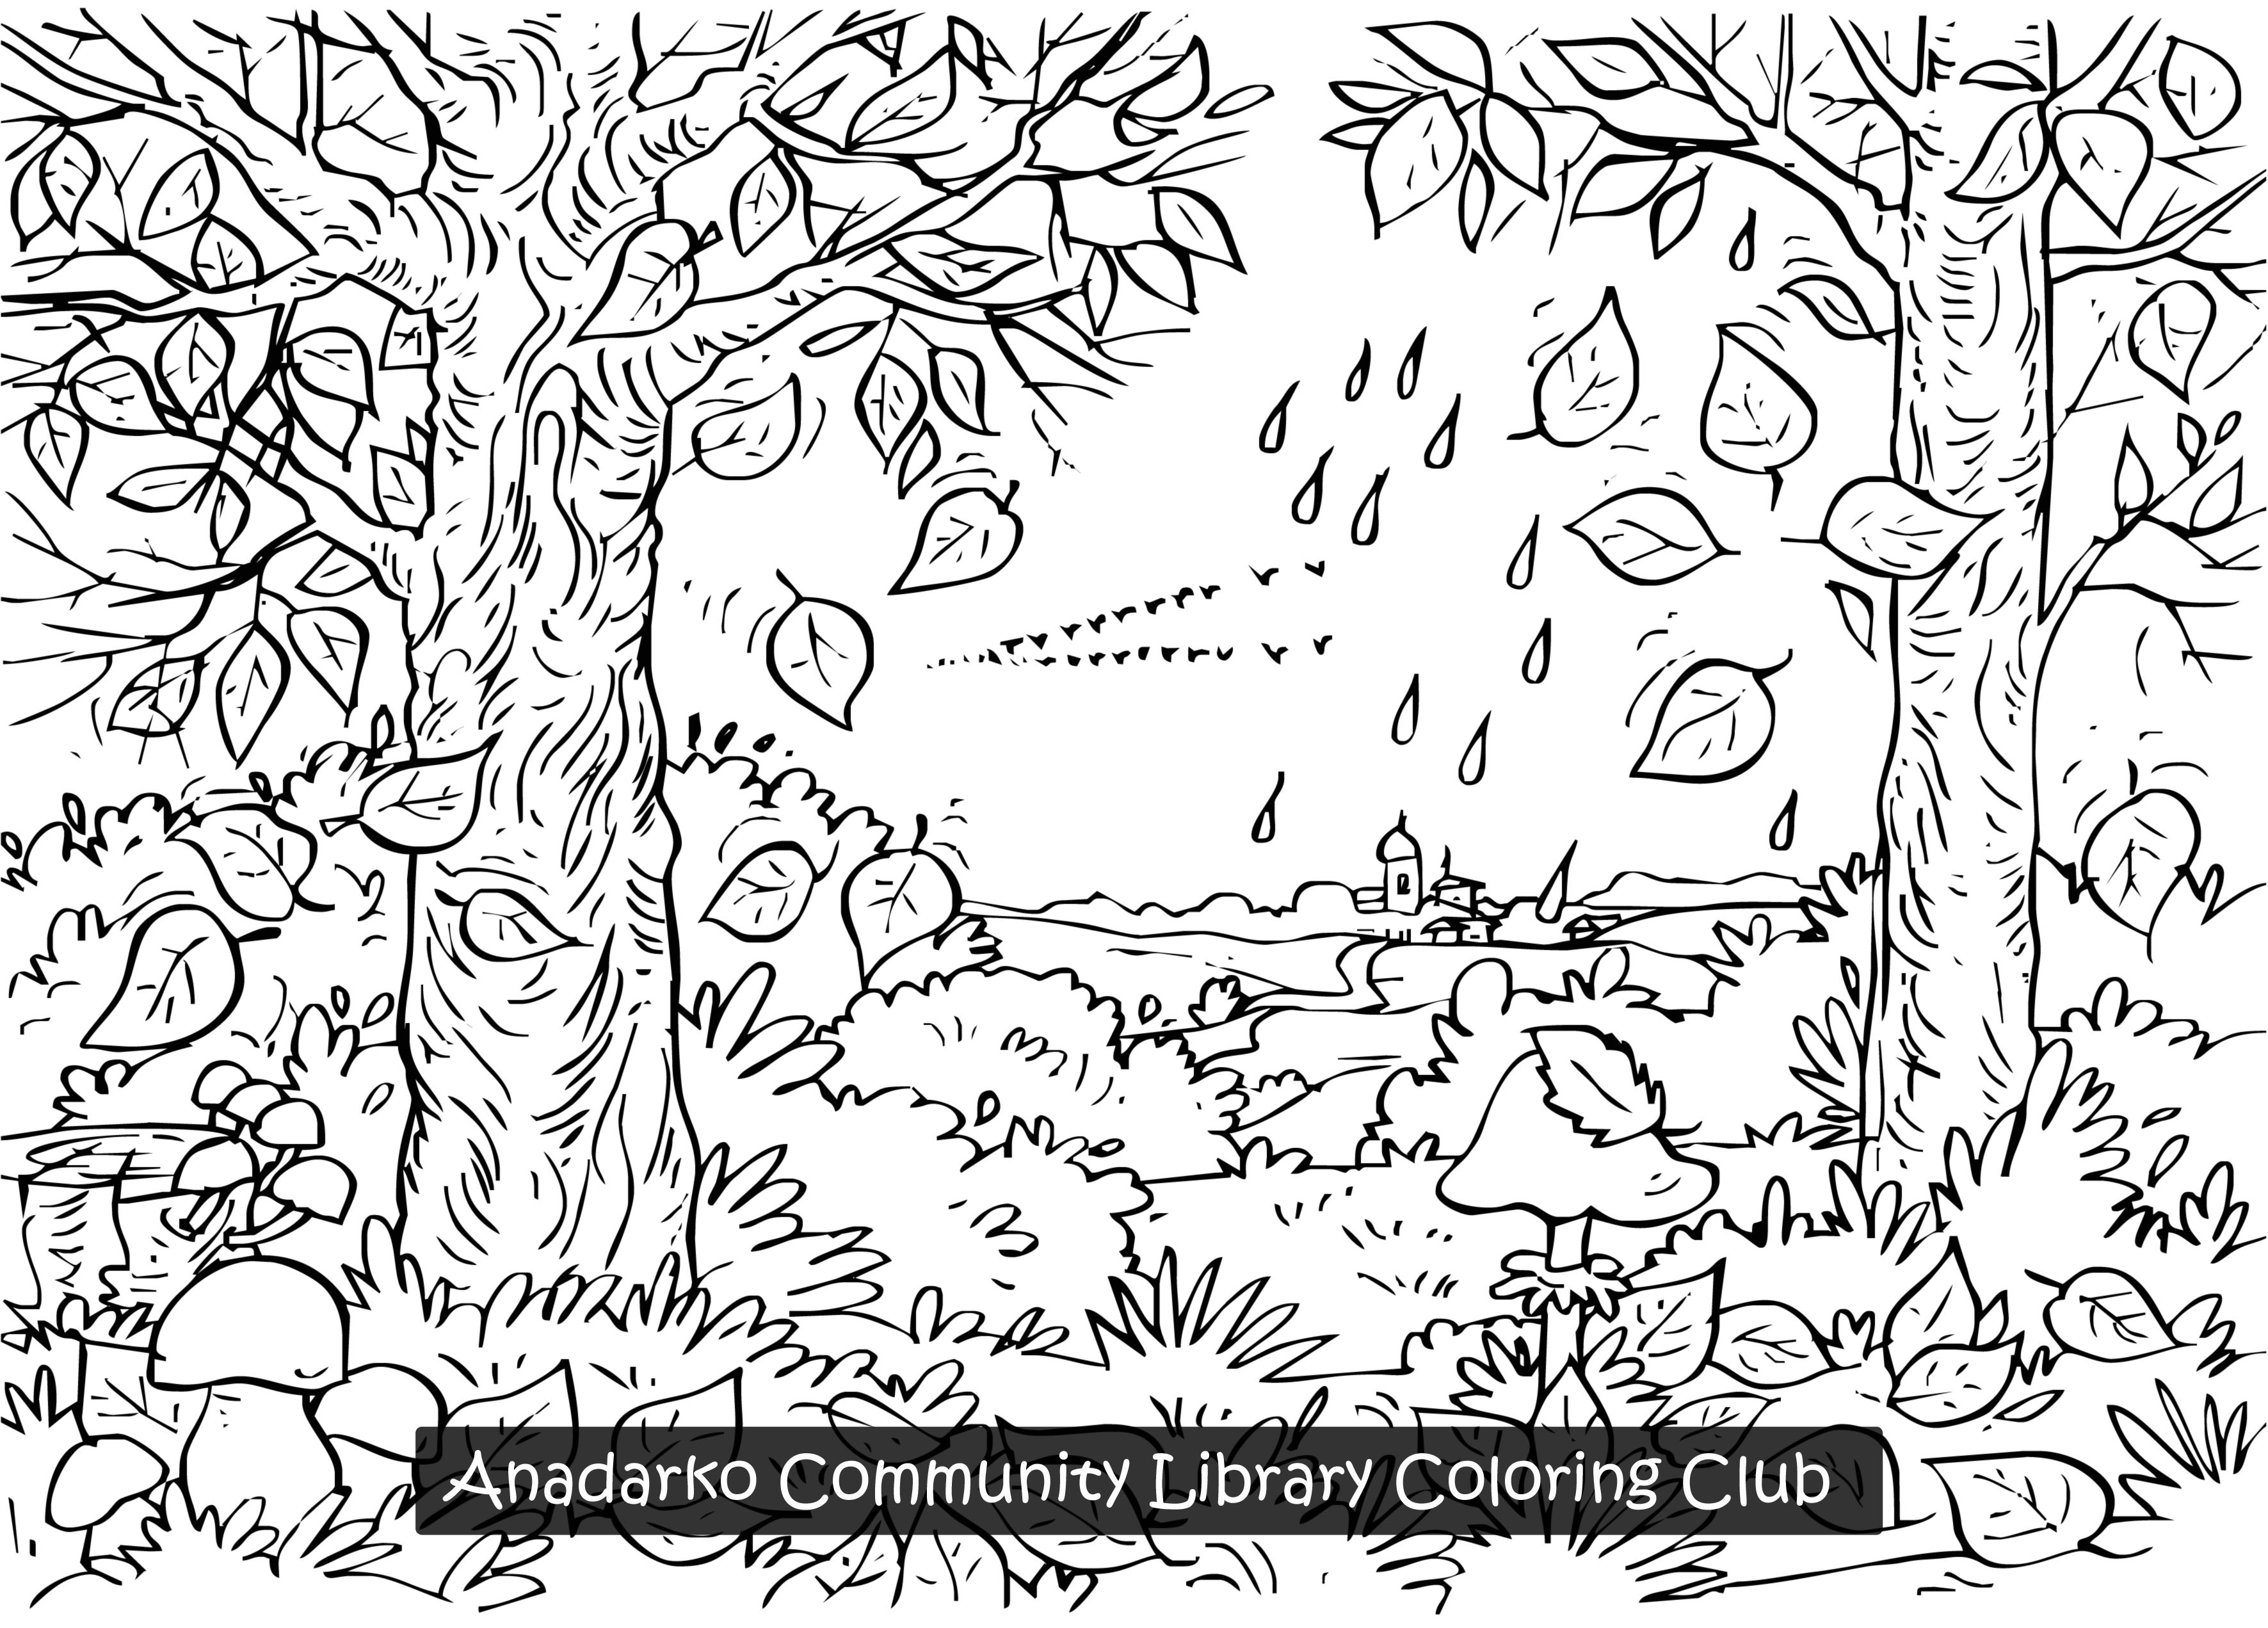 Fall coloring pictures for adults printable - Coloring Pages For Adults Nature Colouring Pages Coloring Pages Doodles And Autumn Tre Color